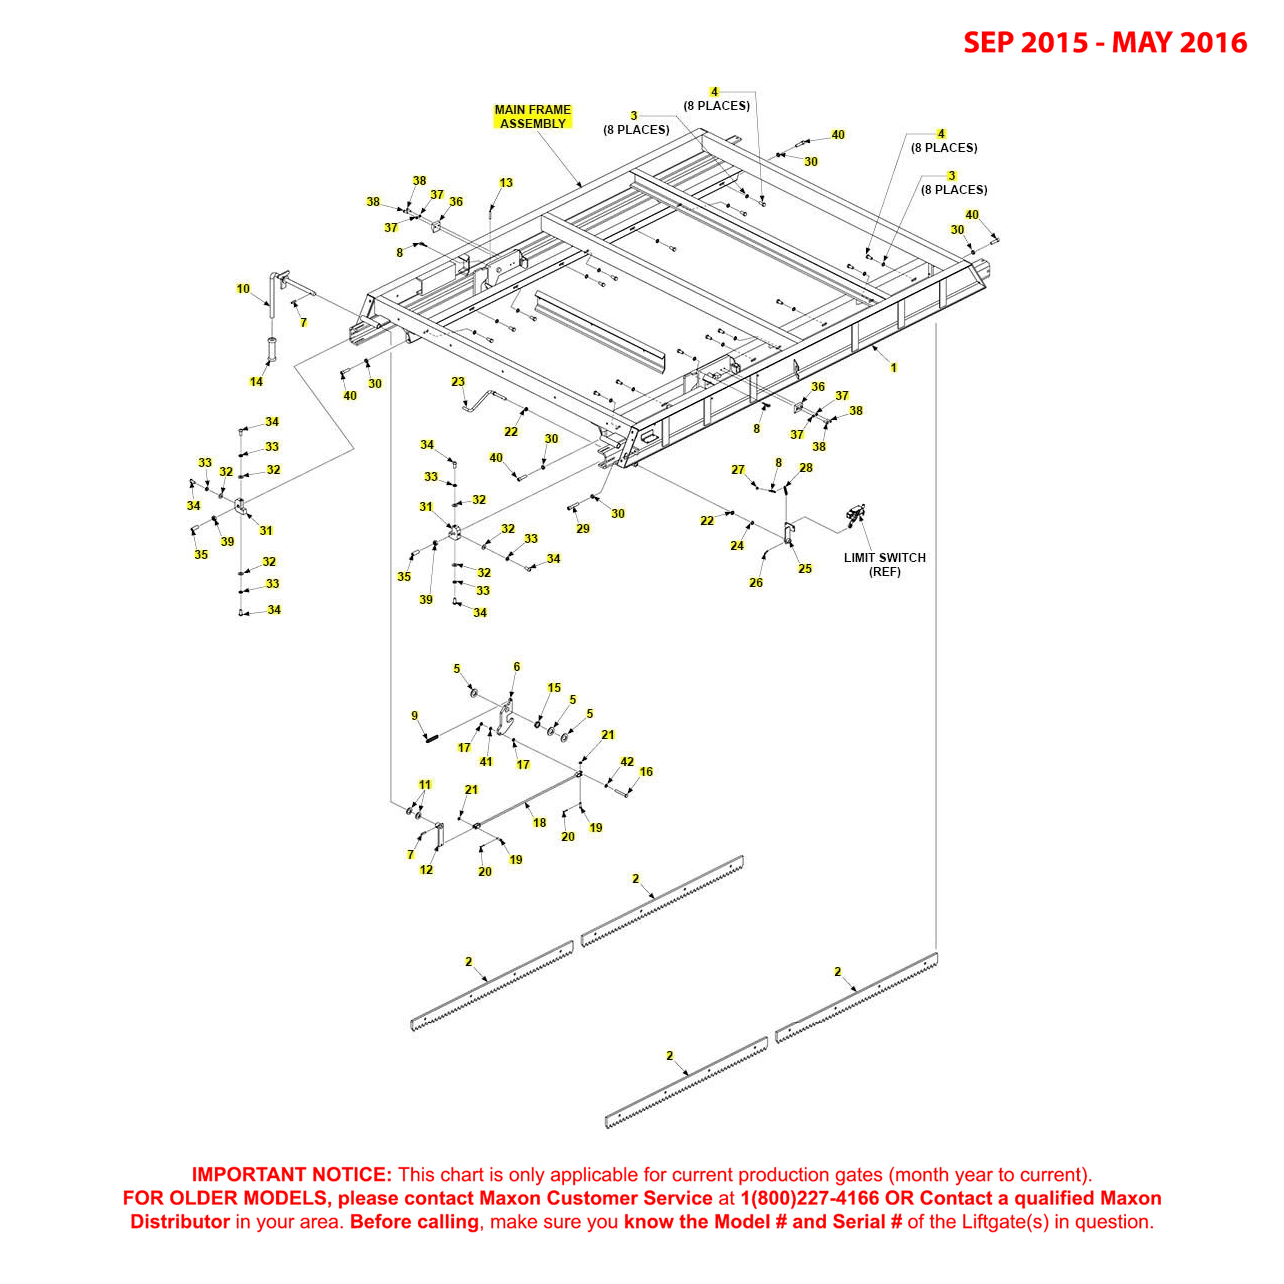 RA (Sep 2015 - May 2016) Main Frame Assembly Diagram